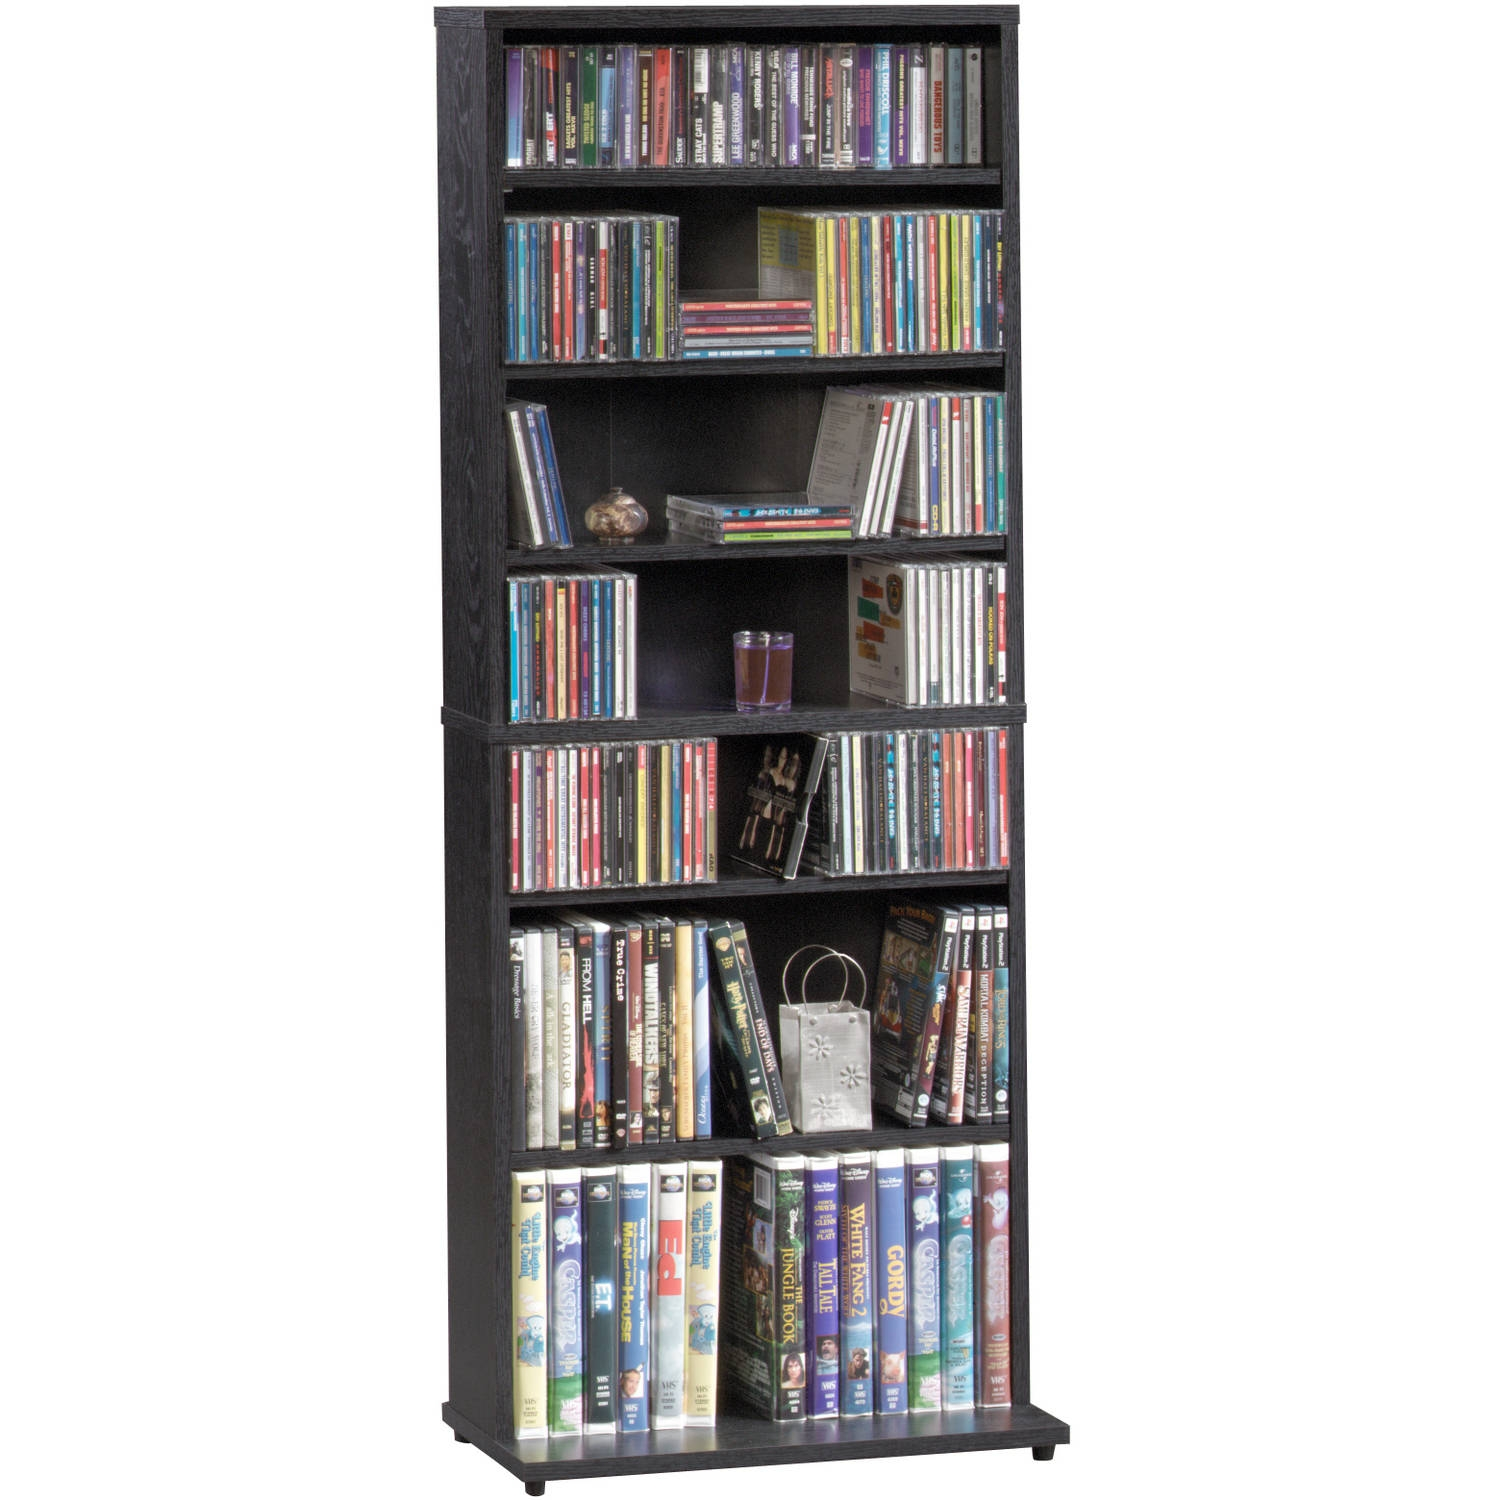 Permalink to Cd Dvd Shelf Cabinet Storage Media Tower